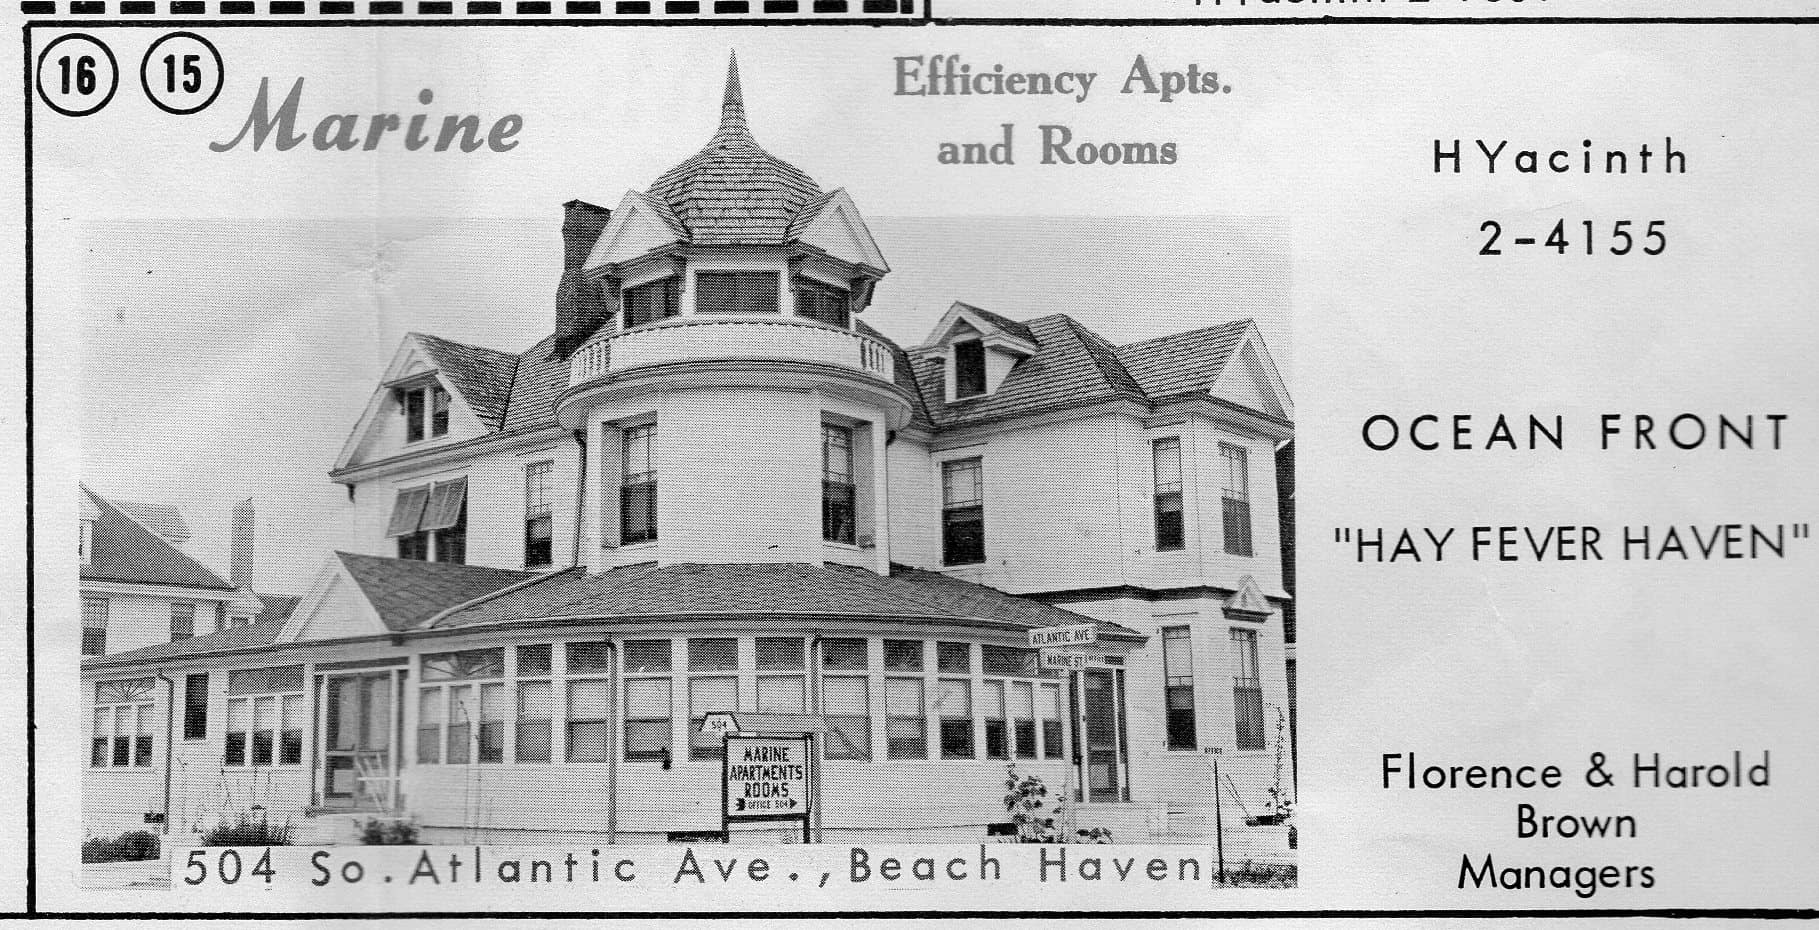 1963 ad for Marine Efficiency Apartments and Rooms in Beach Haven, NJ